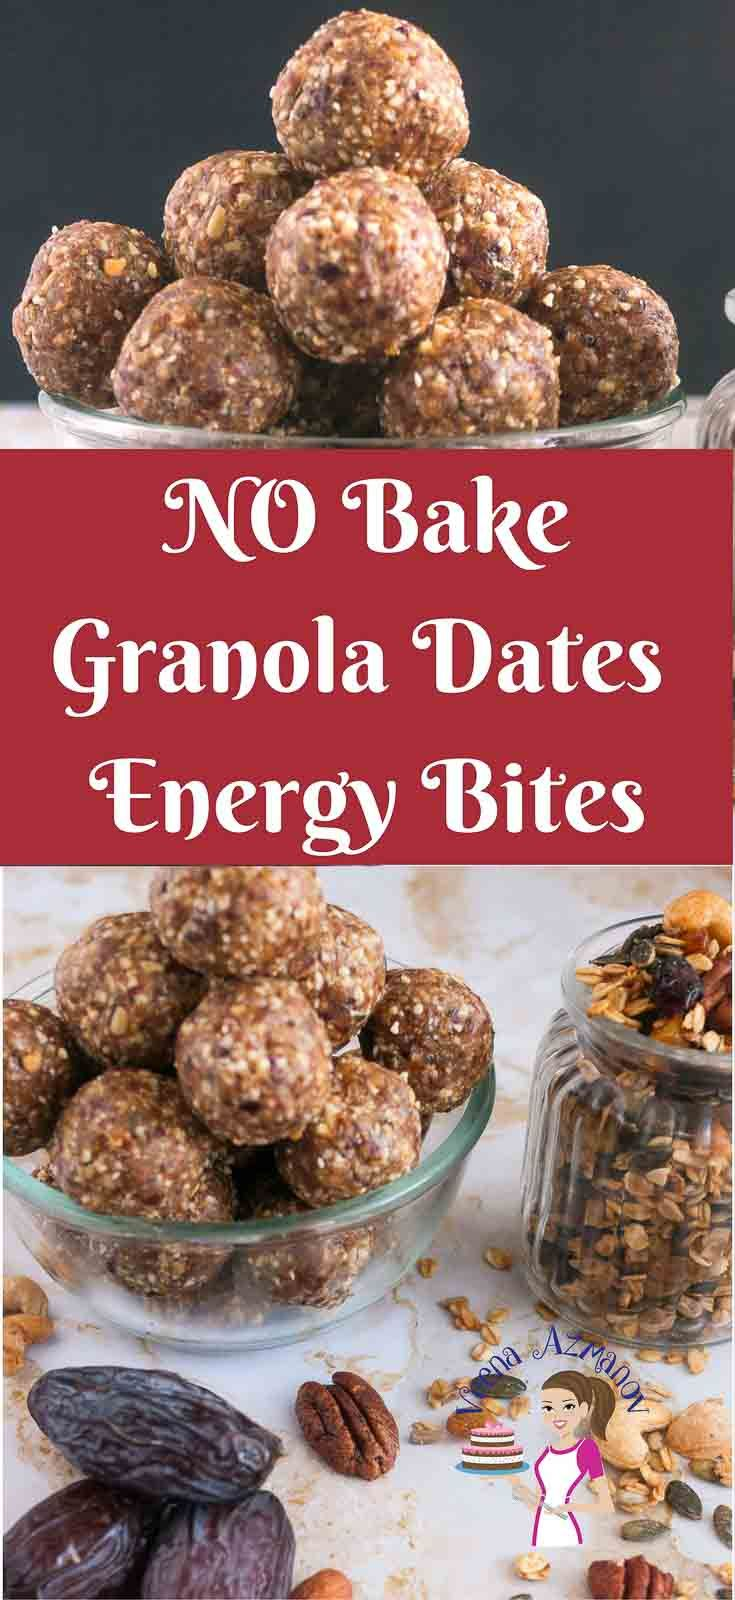 These no bake sugar free granola date energy bites make great snack for those evening hours when you crave for something sweet and indulgent like cookies. The sweetness of the dates and added nutrition from the nuts make these a great light, nutritious energy packed snack before workouts too. via @Veenaazmanov